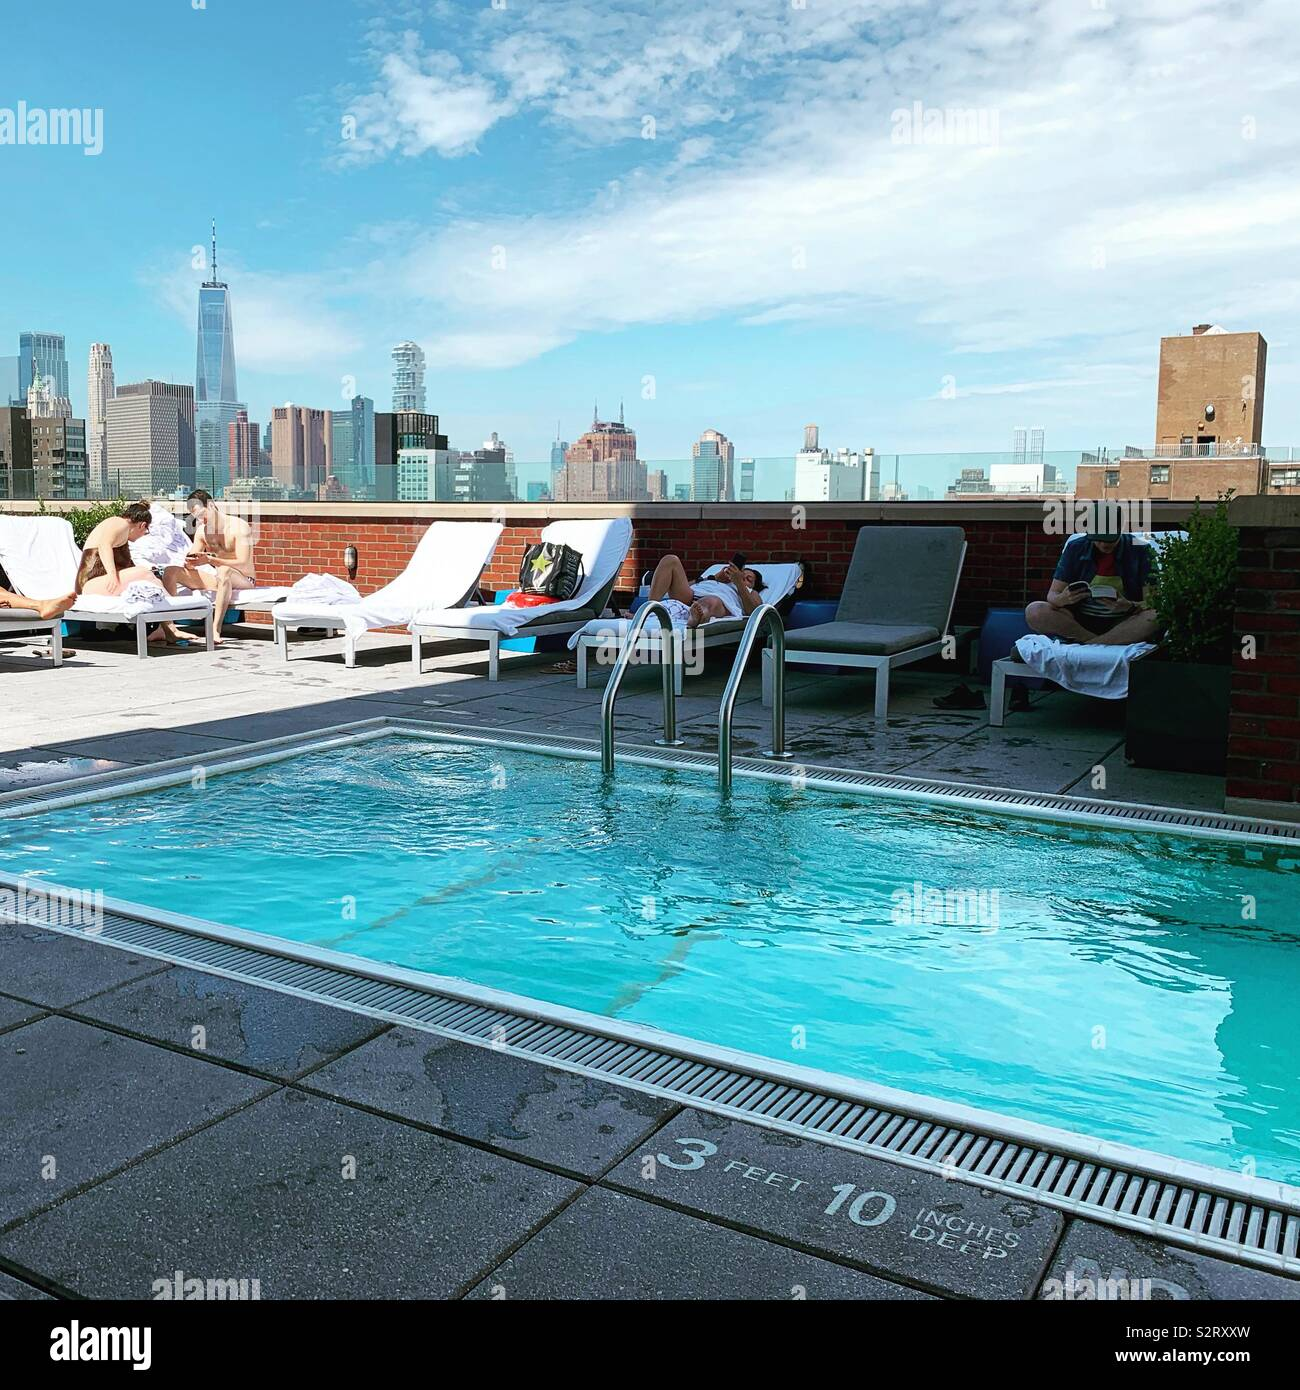 The pool at the Hotel Indigo Lower East Side, New York City - Stock Image